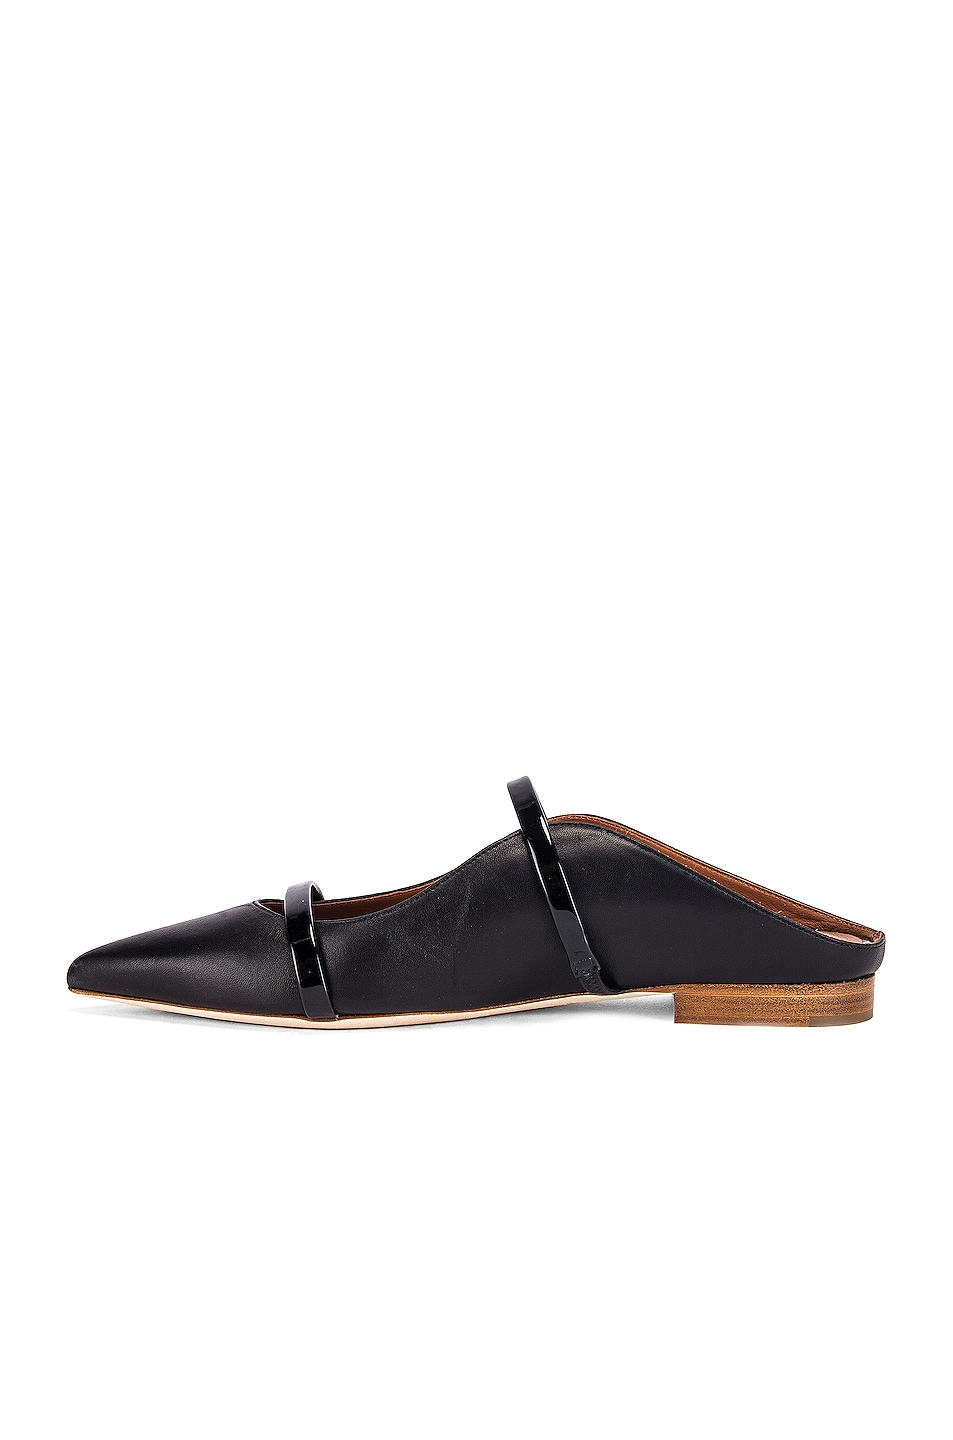 Image 5 of Malone Souliers Maureen MS Flat in Black